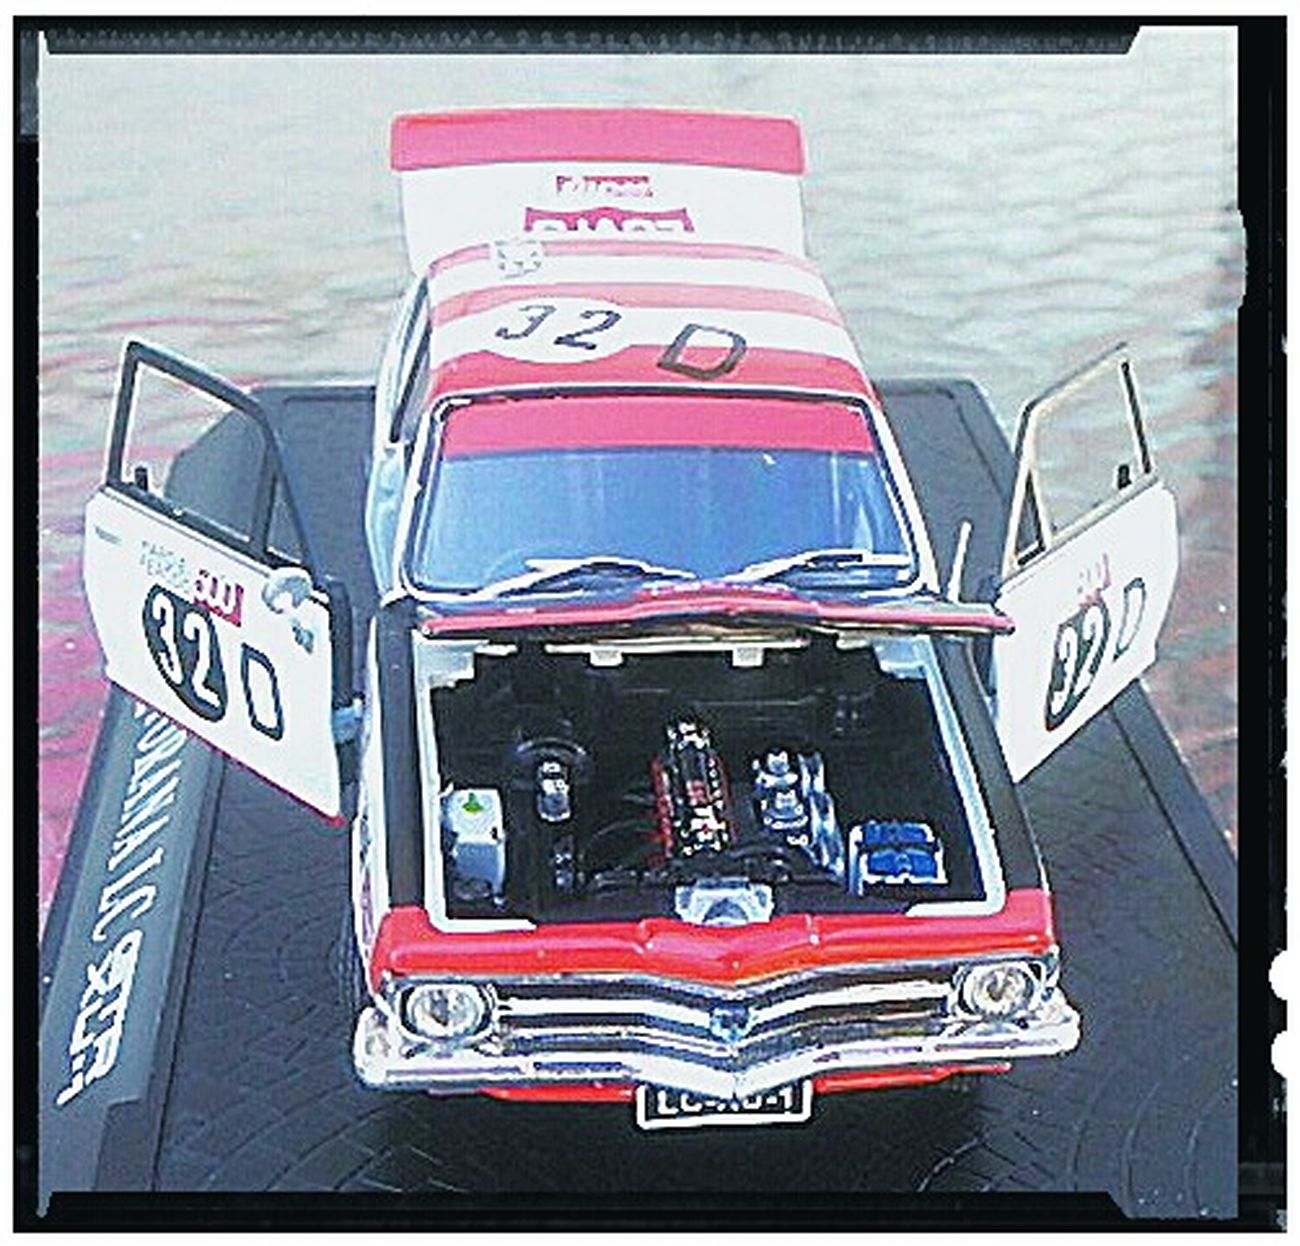 Holden Dealer Team Racing Cars GTR_XU-1_Torana Holden Torana GTR H.D.T. XU-1 Cars GMH Car Brock Motorsport Brock Car Racing Carporn Car Porn Fast Cars... Motorsports Fast Cars Check This Out Checkthisout General Motors Holden Fast Car Holden Torana Racing Car